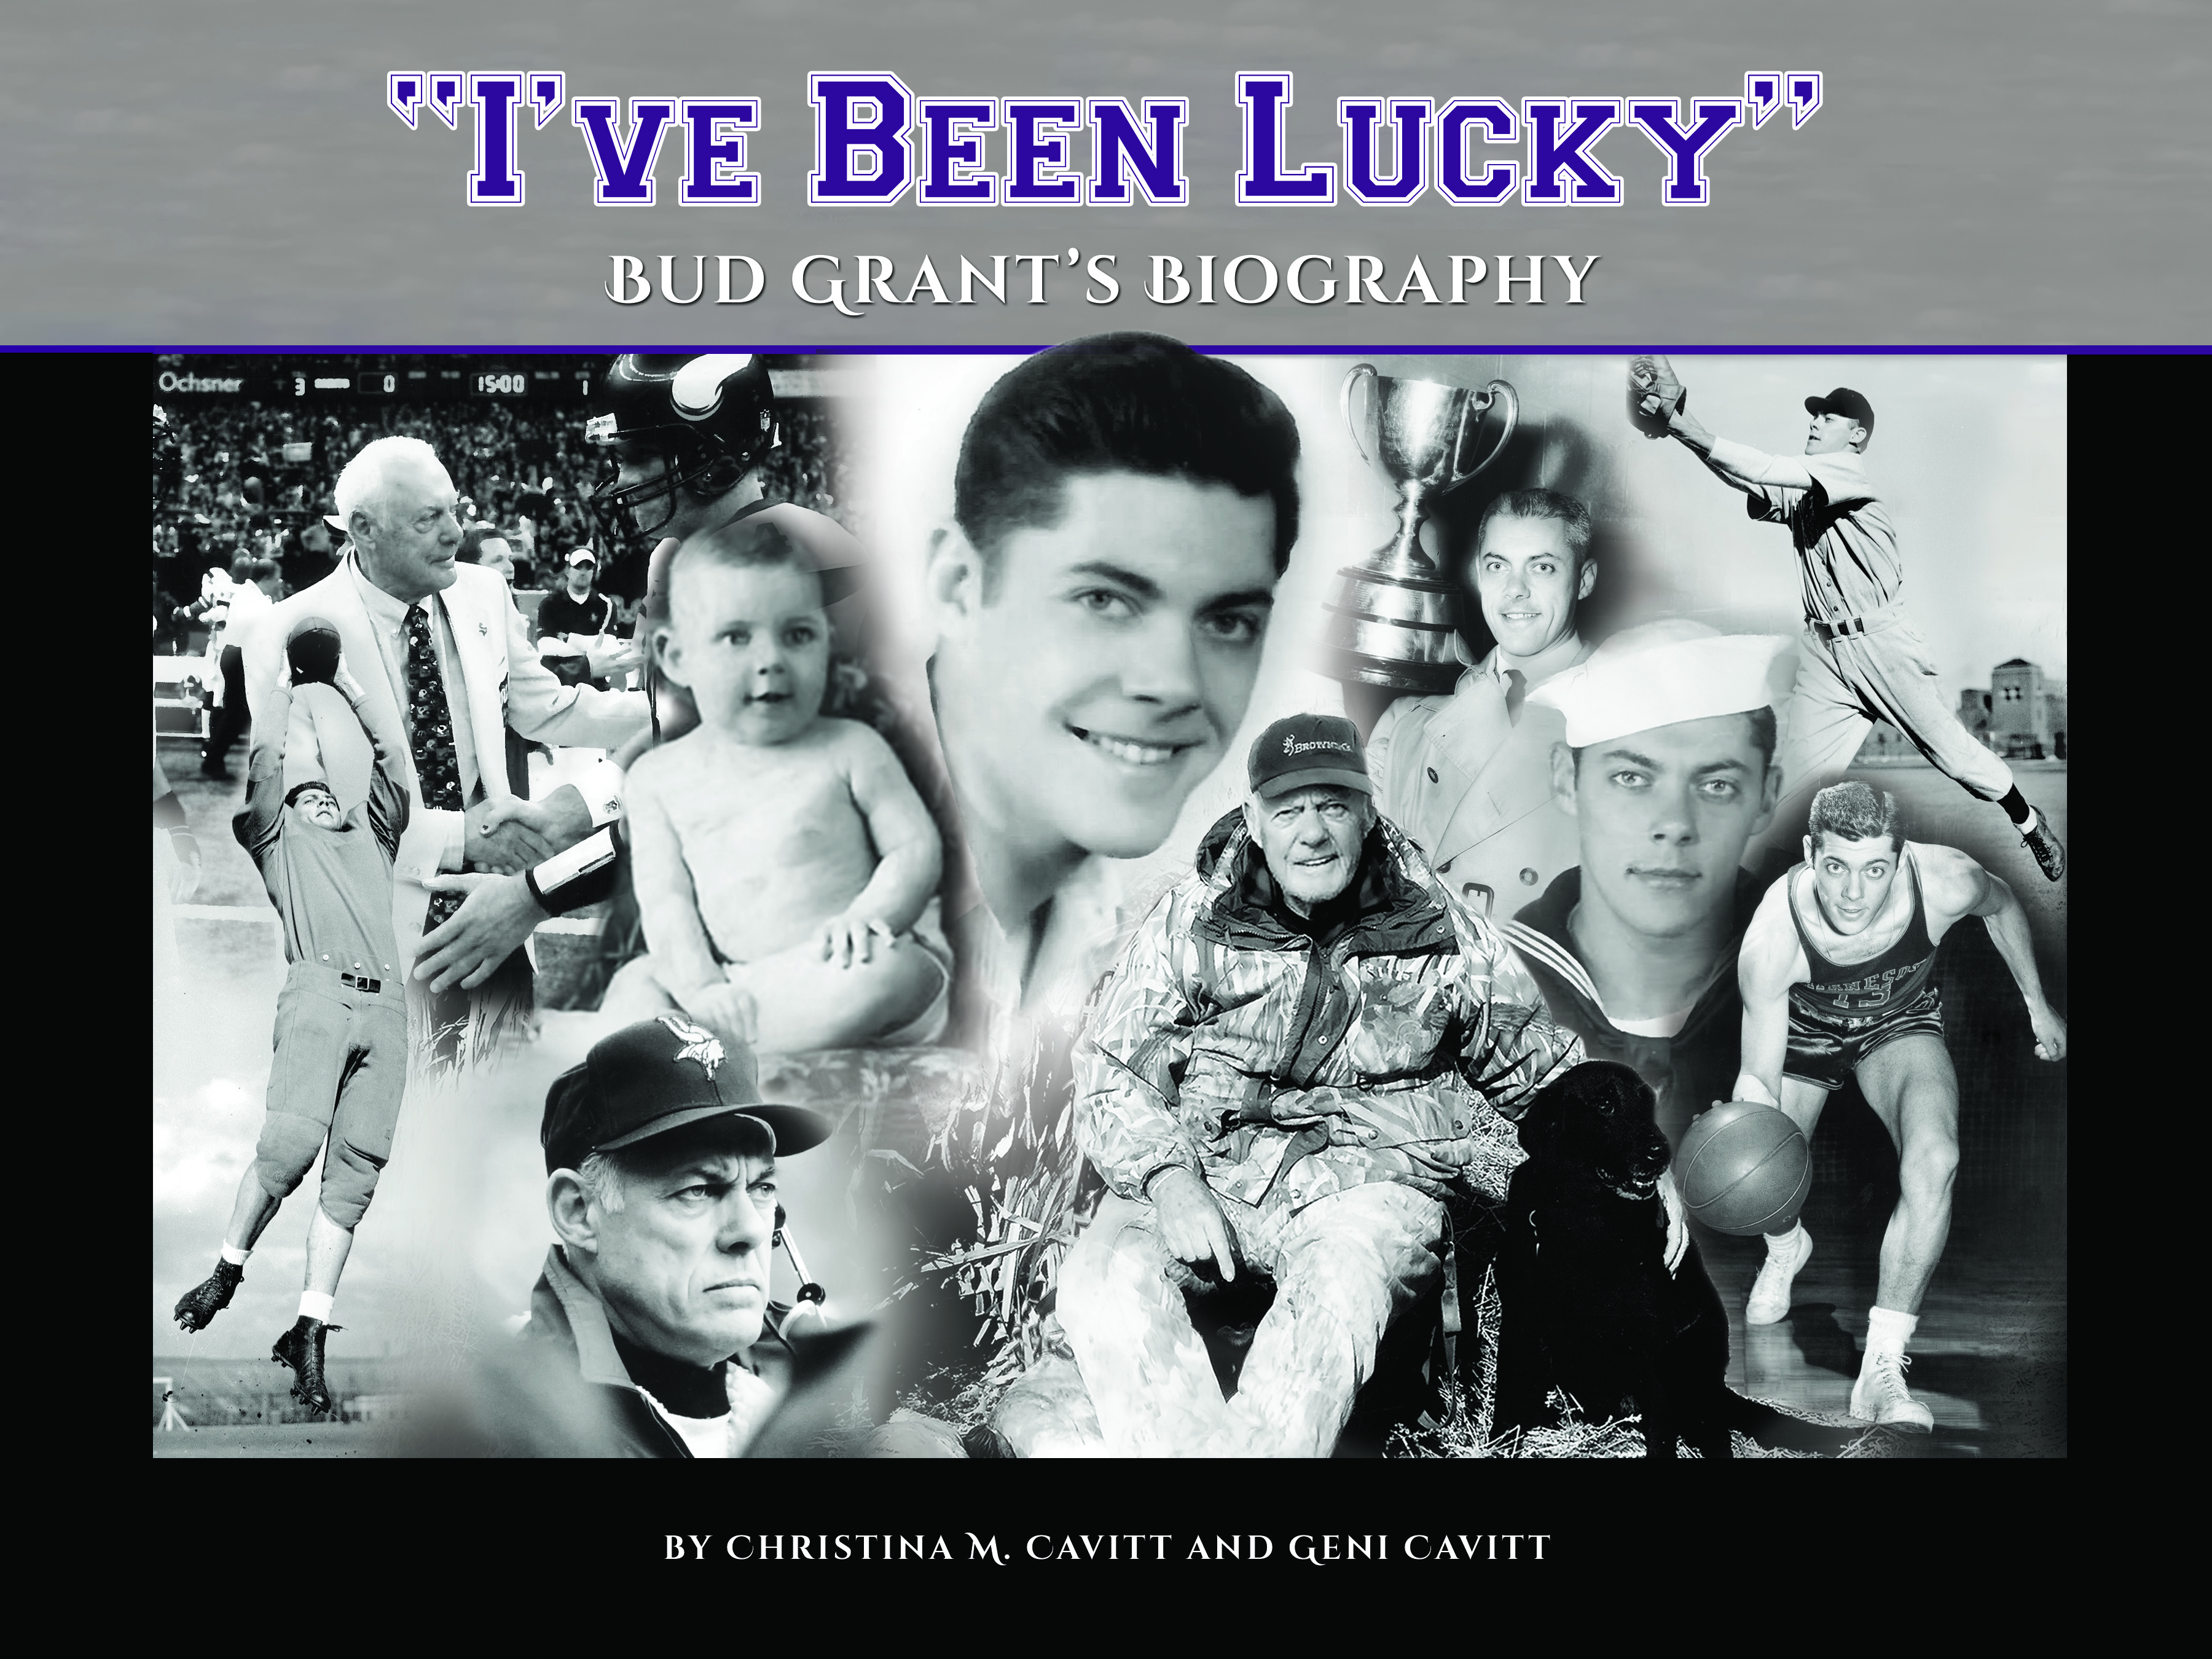 I've Been Luck - Bud Grant Biography